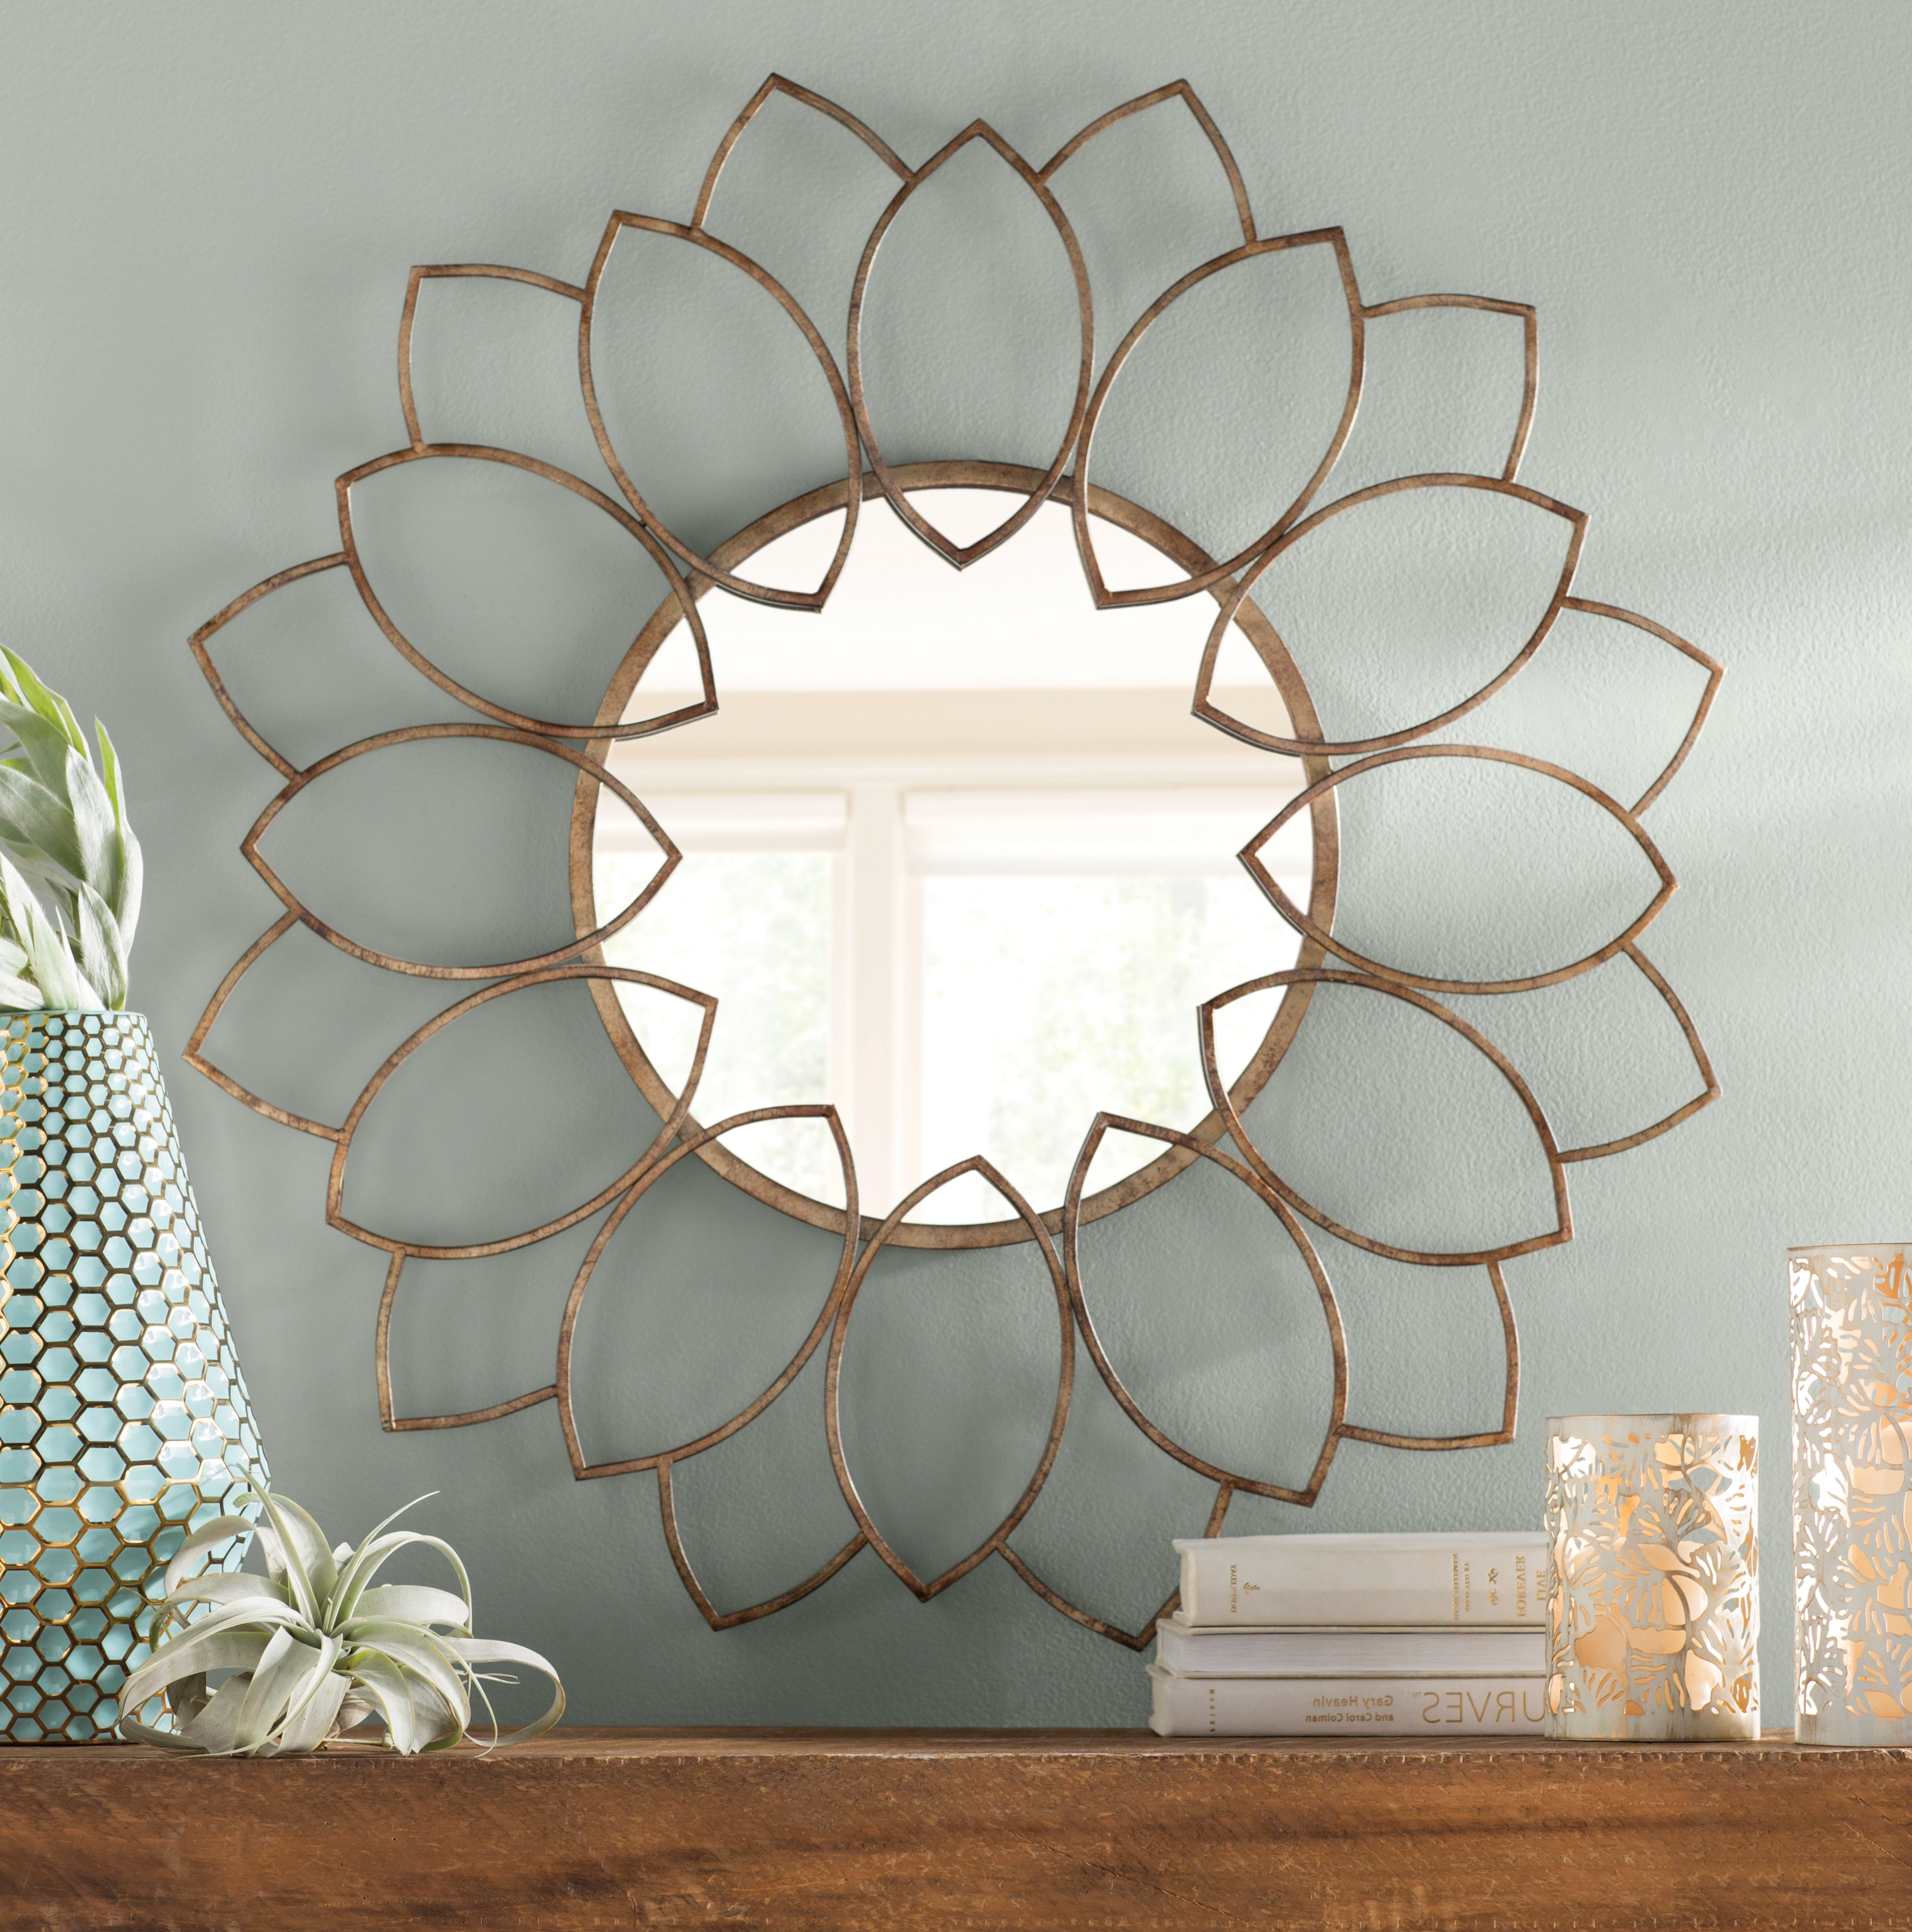 Latest Brynn Accent Mirror Throughout Brynn Accent Mirrors (Gallery 1 of 20)